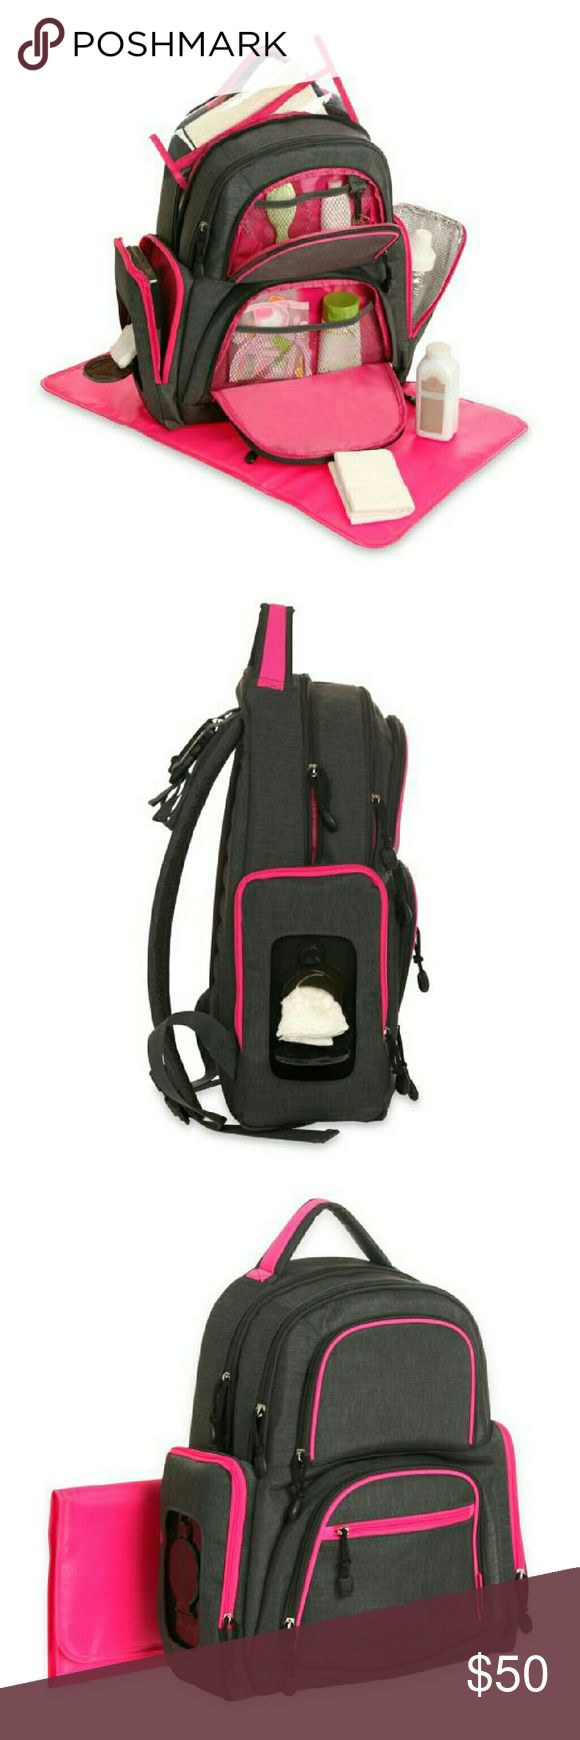 Carte'r diaper backpack Brand new Price is firm carter Bags Backpacks